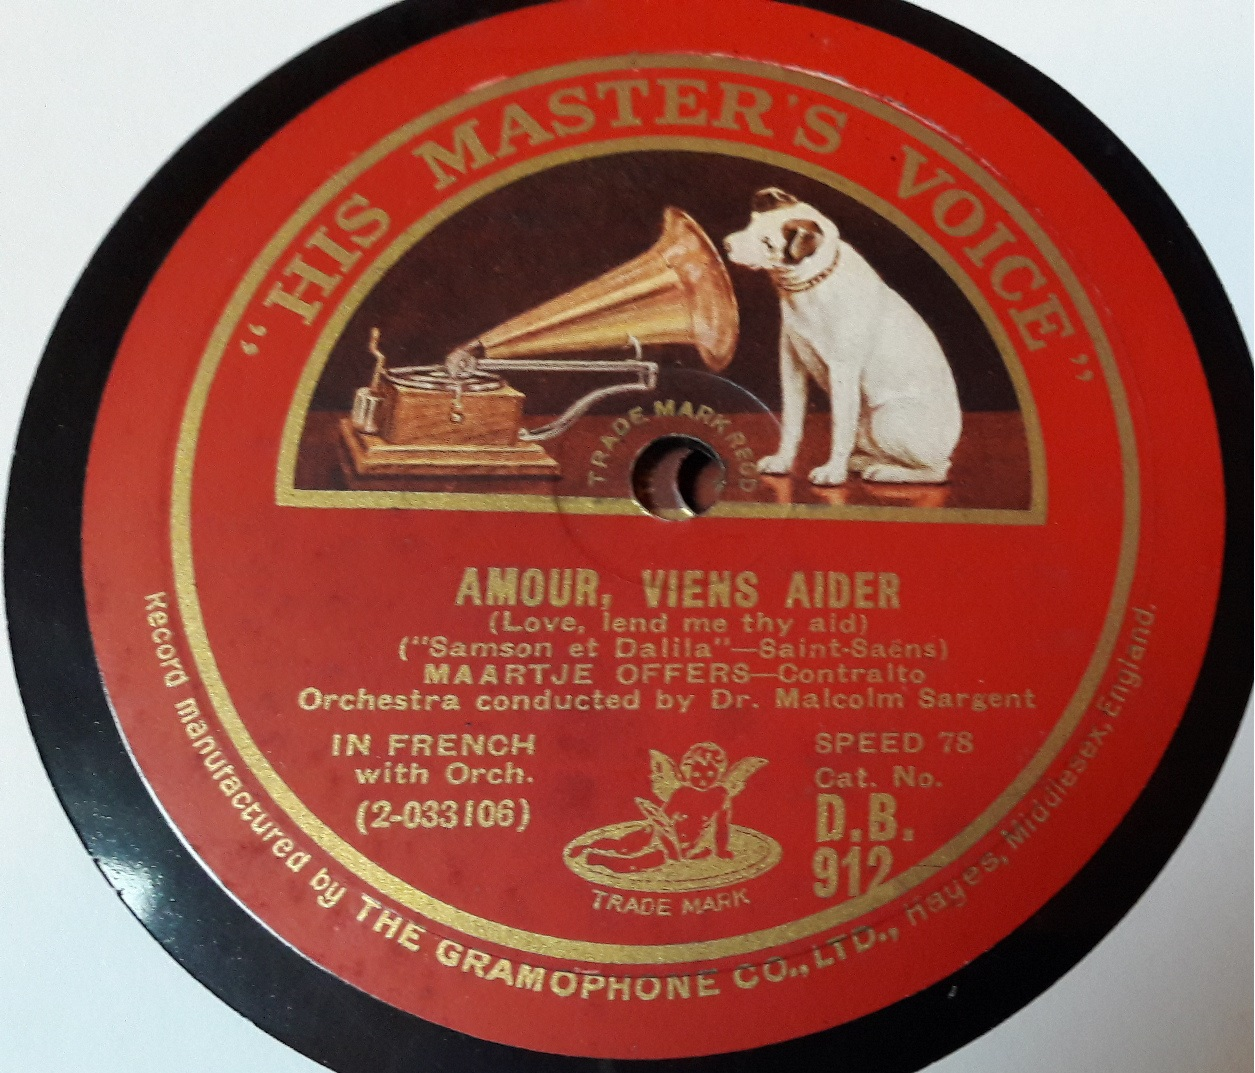 Maartje Offers Contralto - Amour Viens Aider - HMV DB.735